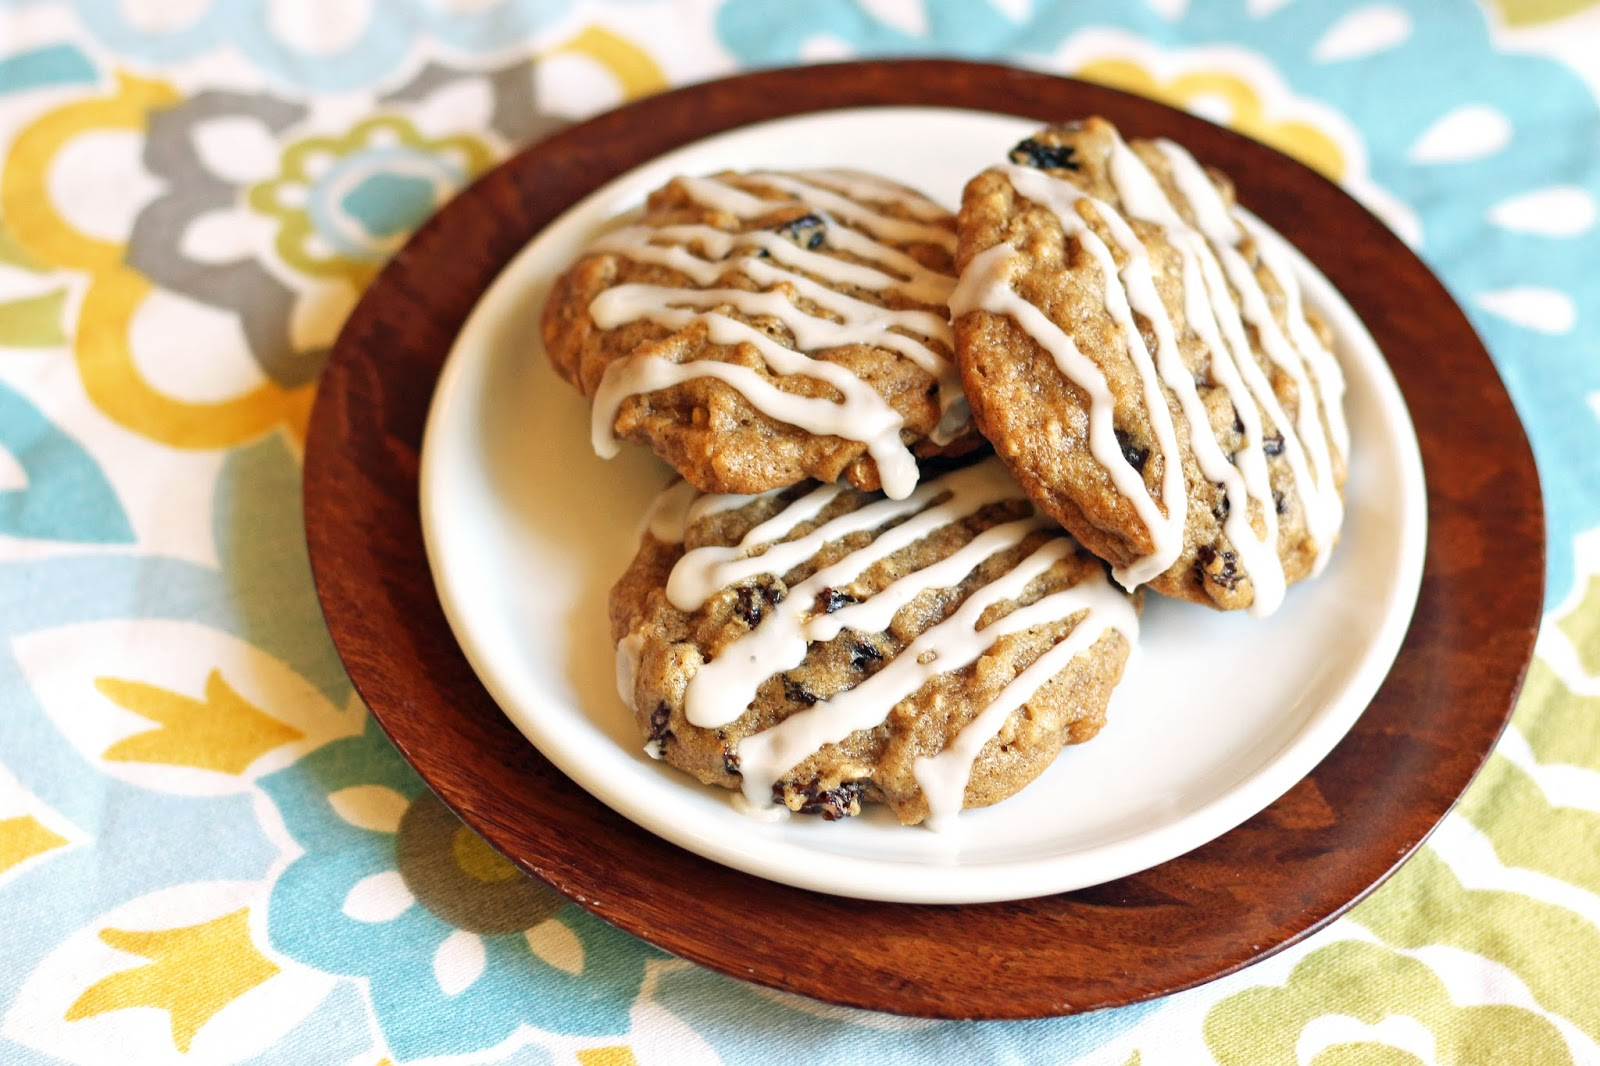 ... Gluten Free Treats: gluten free vegan glazed oatmeal raisin cookies